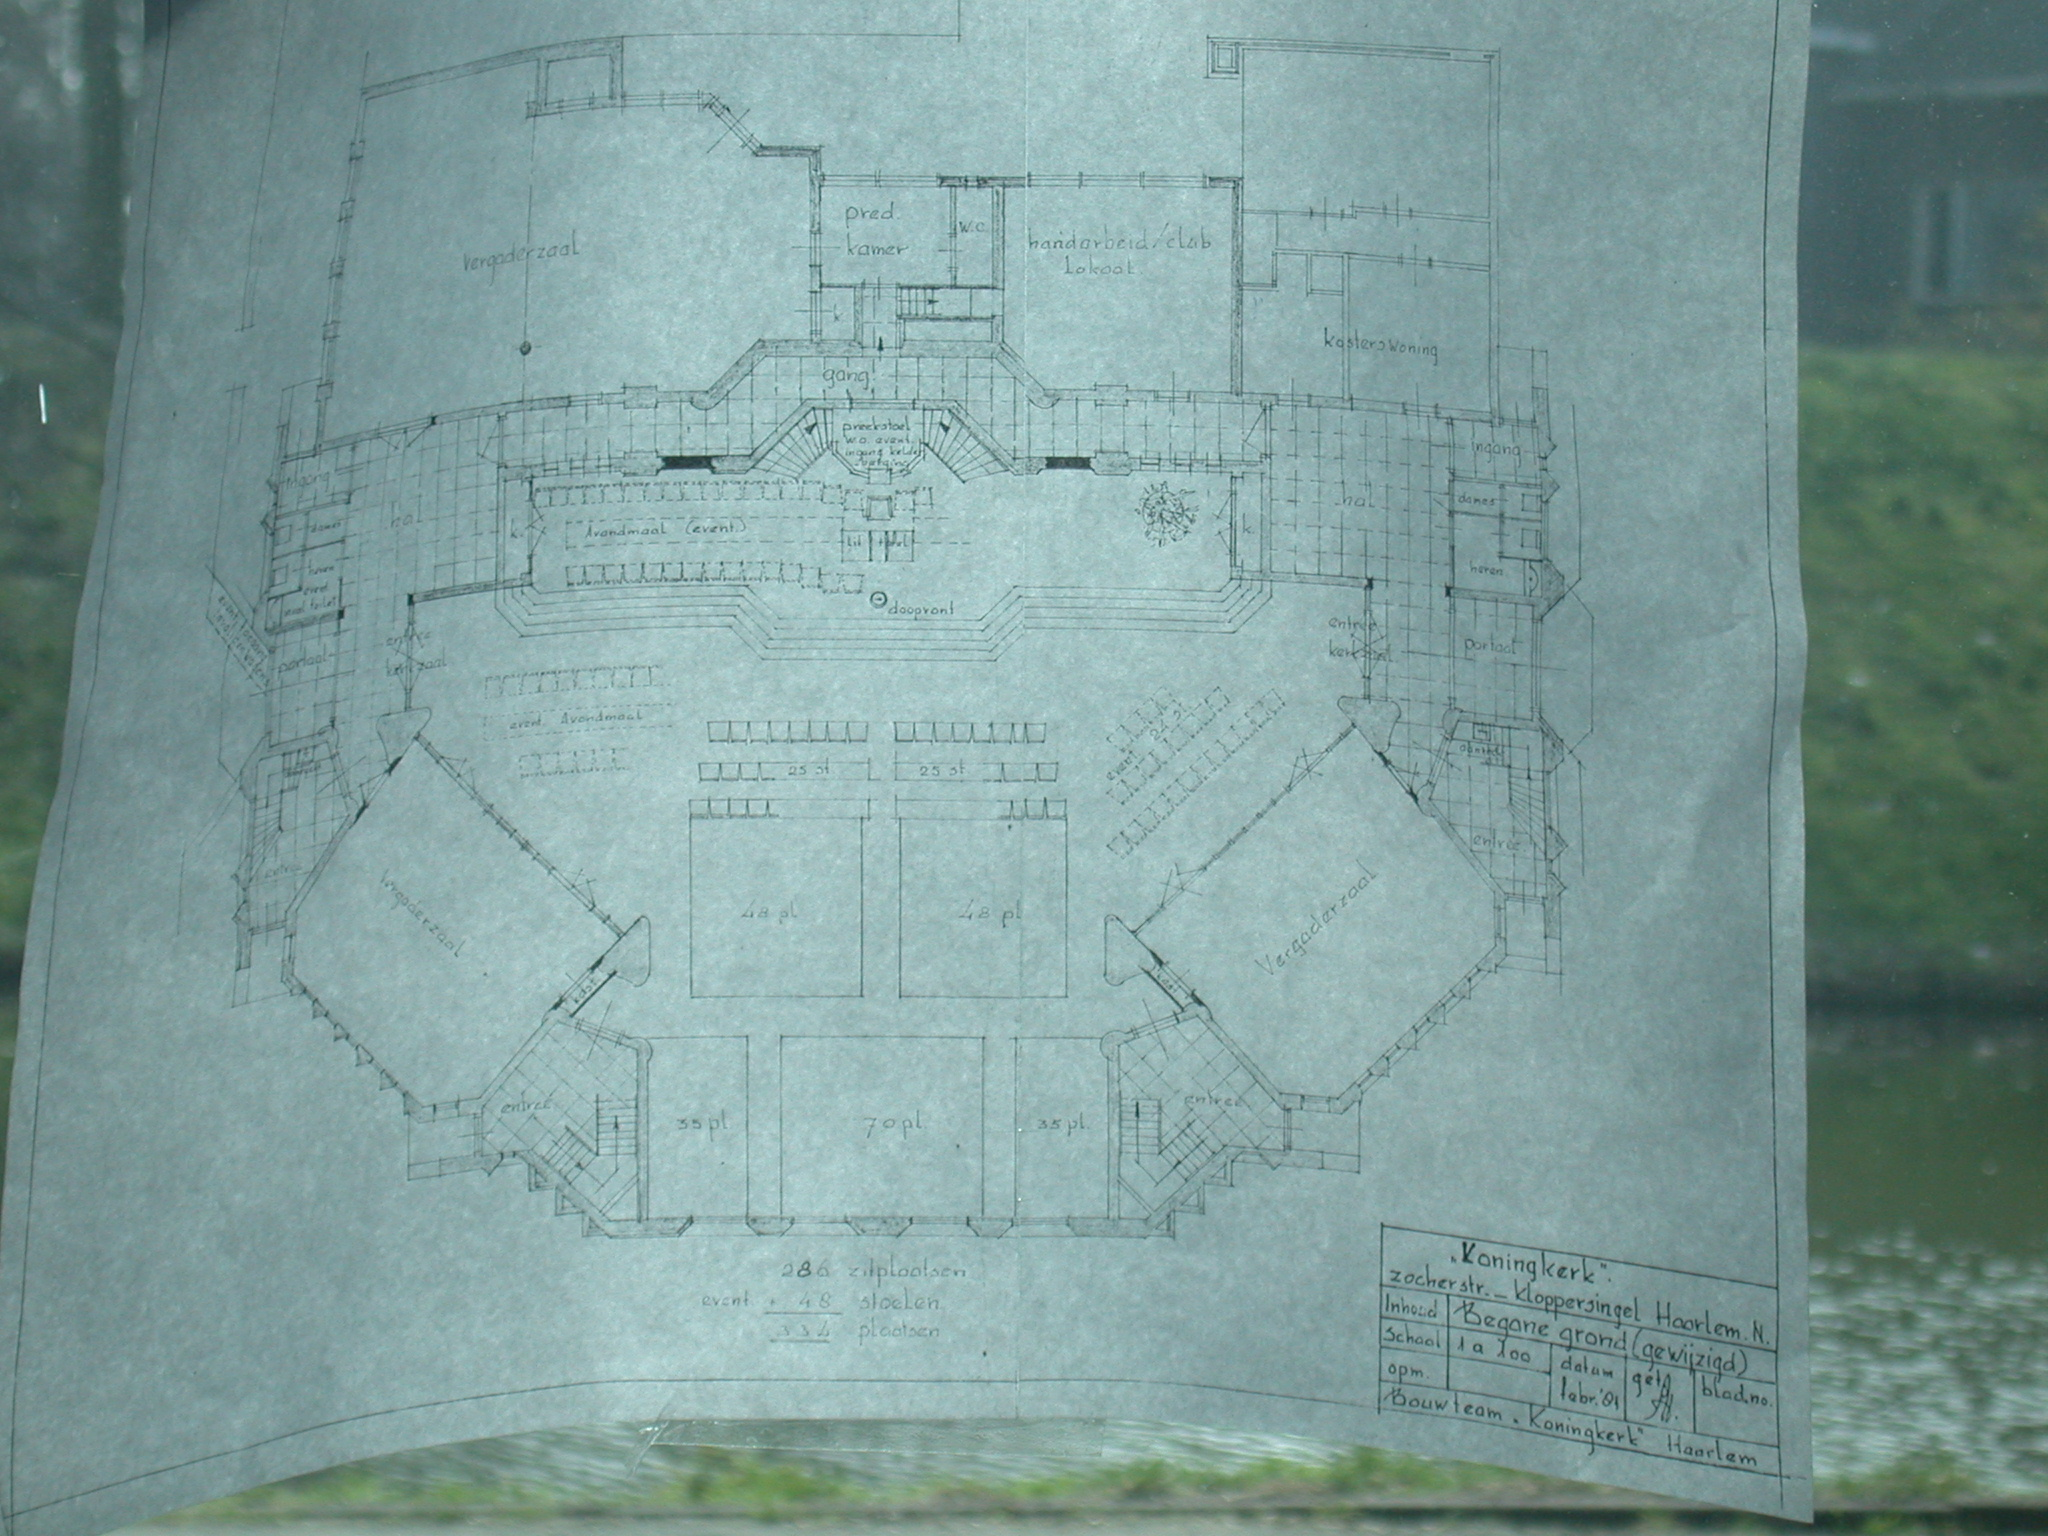 scripts koningkerk disaster map buildingplan blueprint blueprints drawing paper plan plans